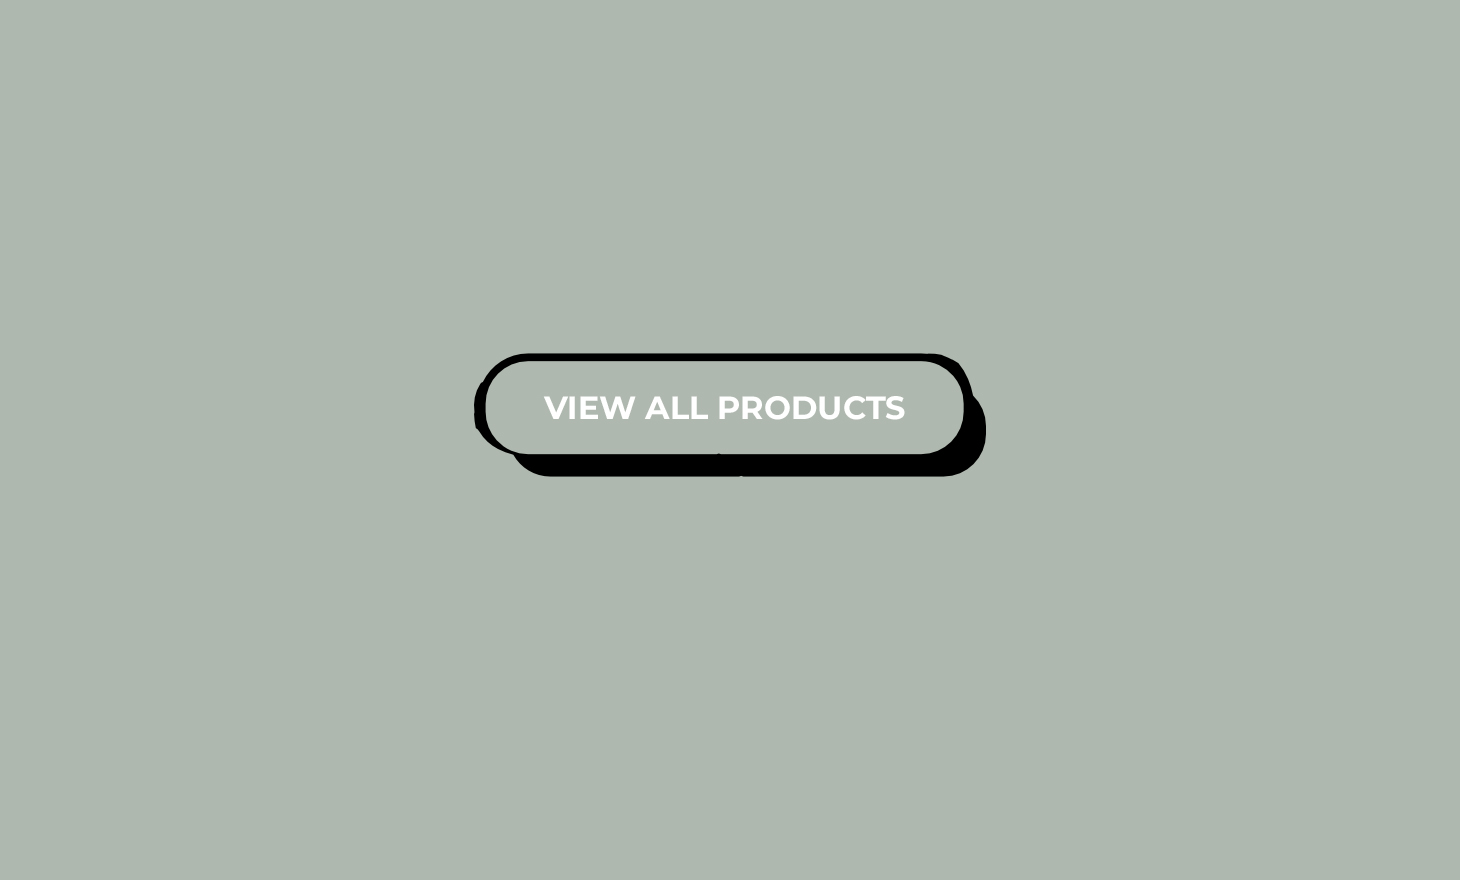 How to add a 'View All Products' button to the Shopify Minimal theme